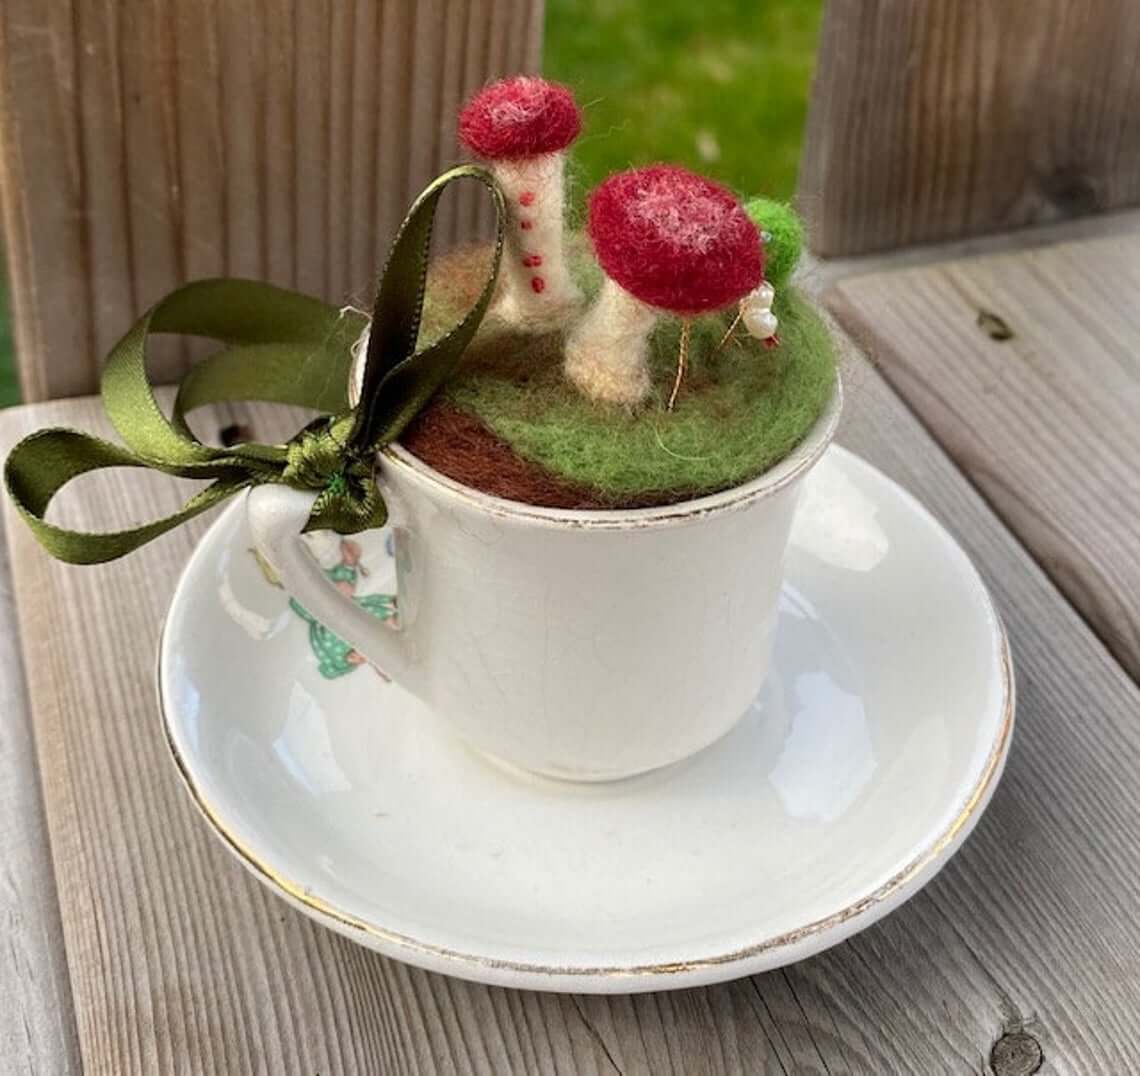 Fuzzy Mushroom Decorative Teacup and Saucer